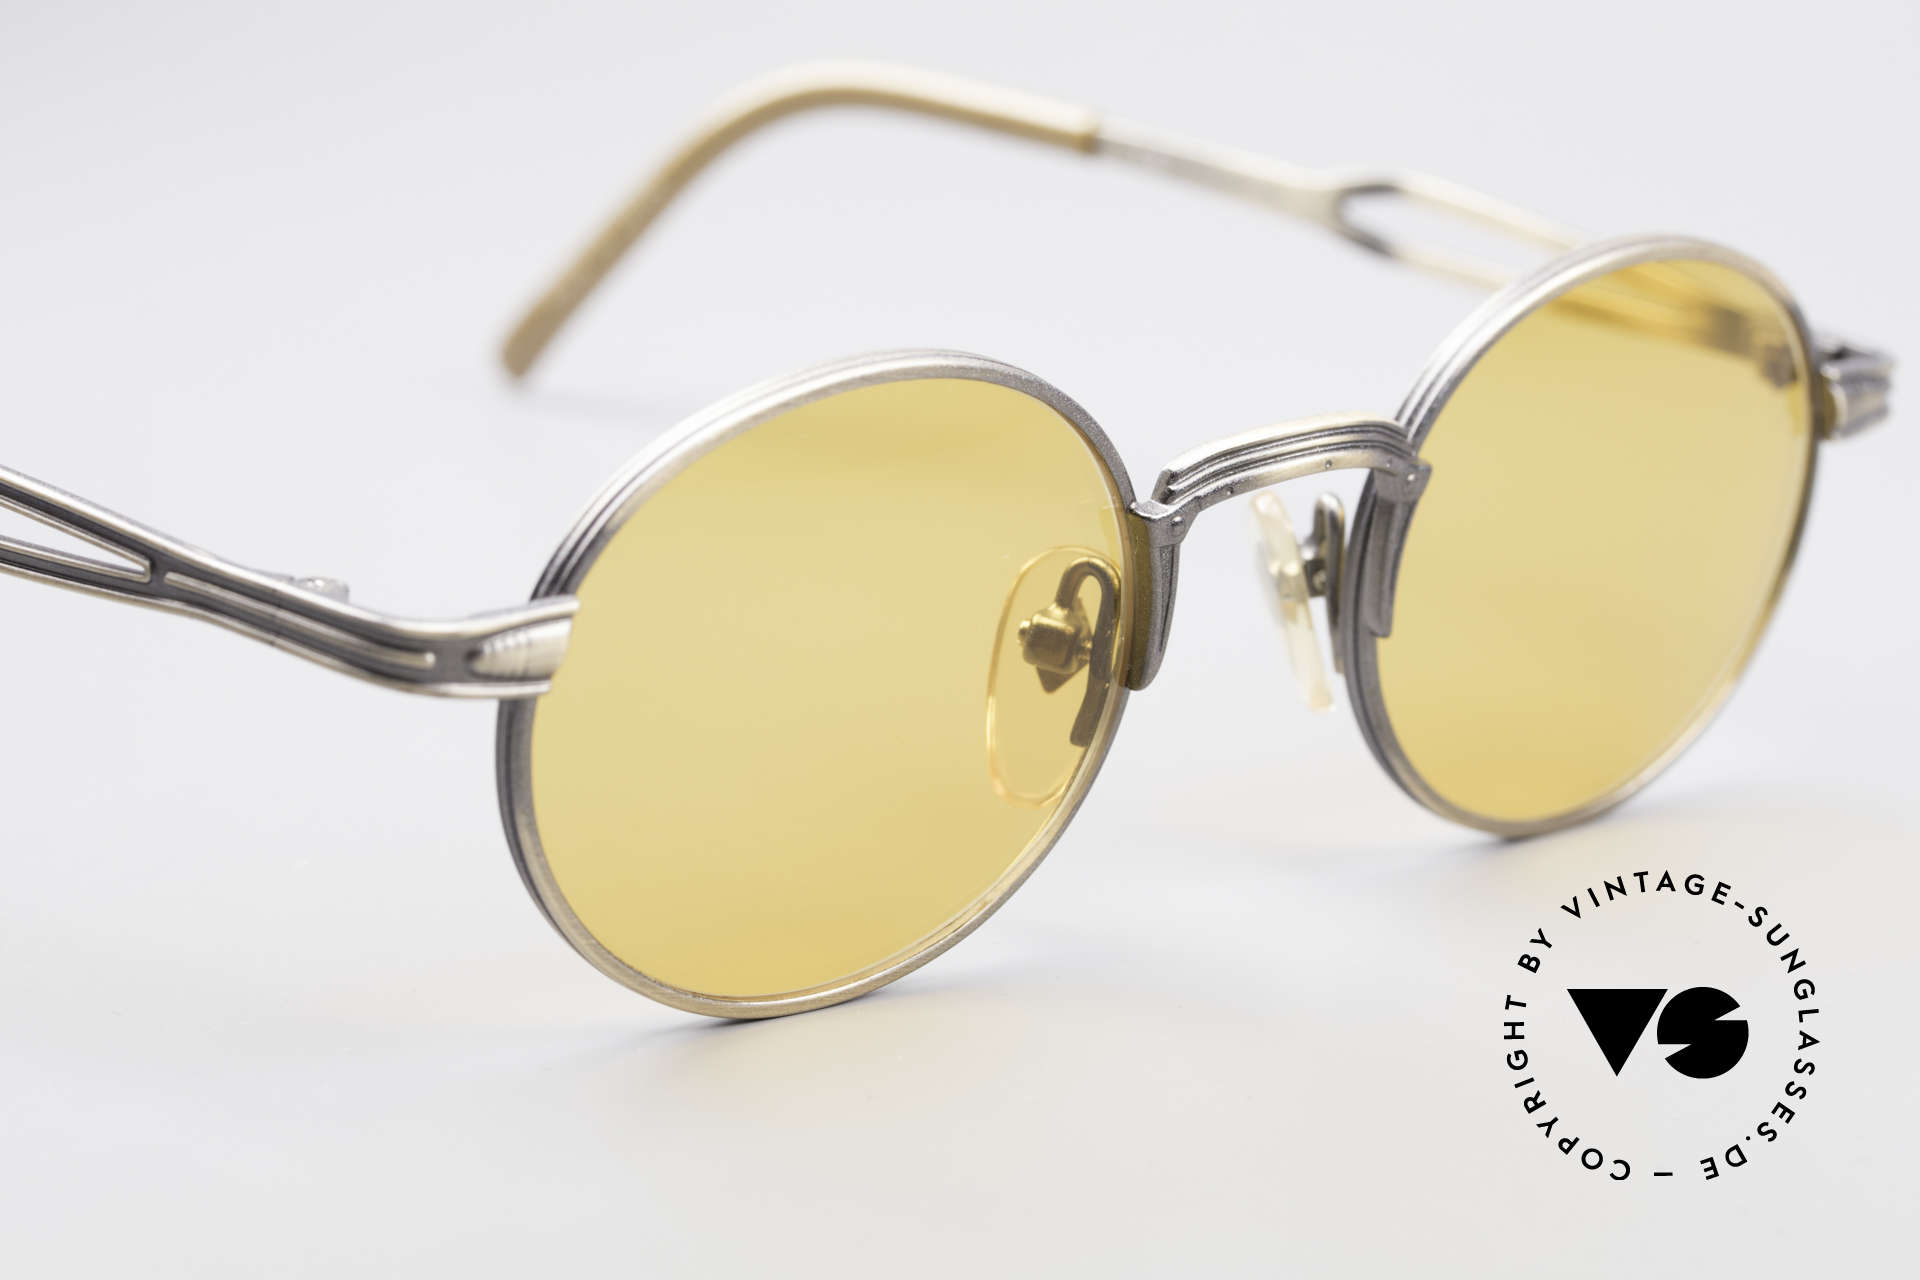 Jean Paul Gaultier 55-7107 Round Vintage Sunglasses, unworn (like all our vintage GAULTIER sunglasses), Made for Men and Women